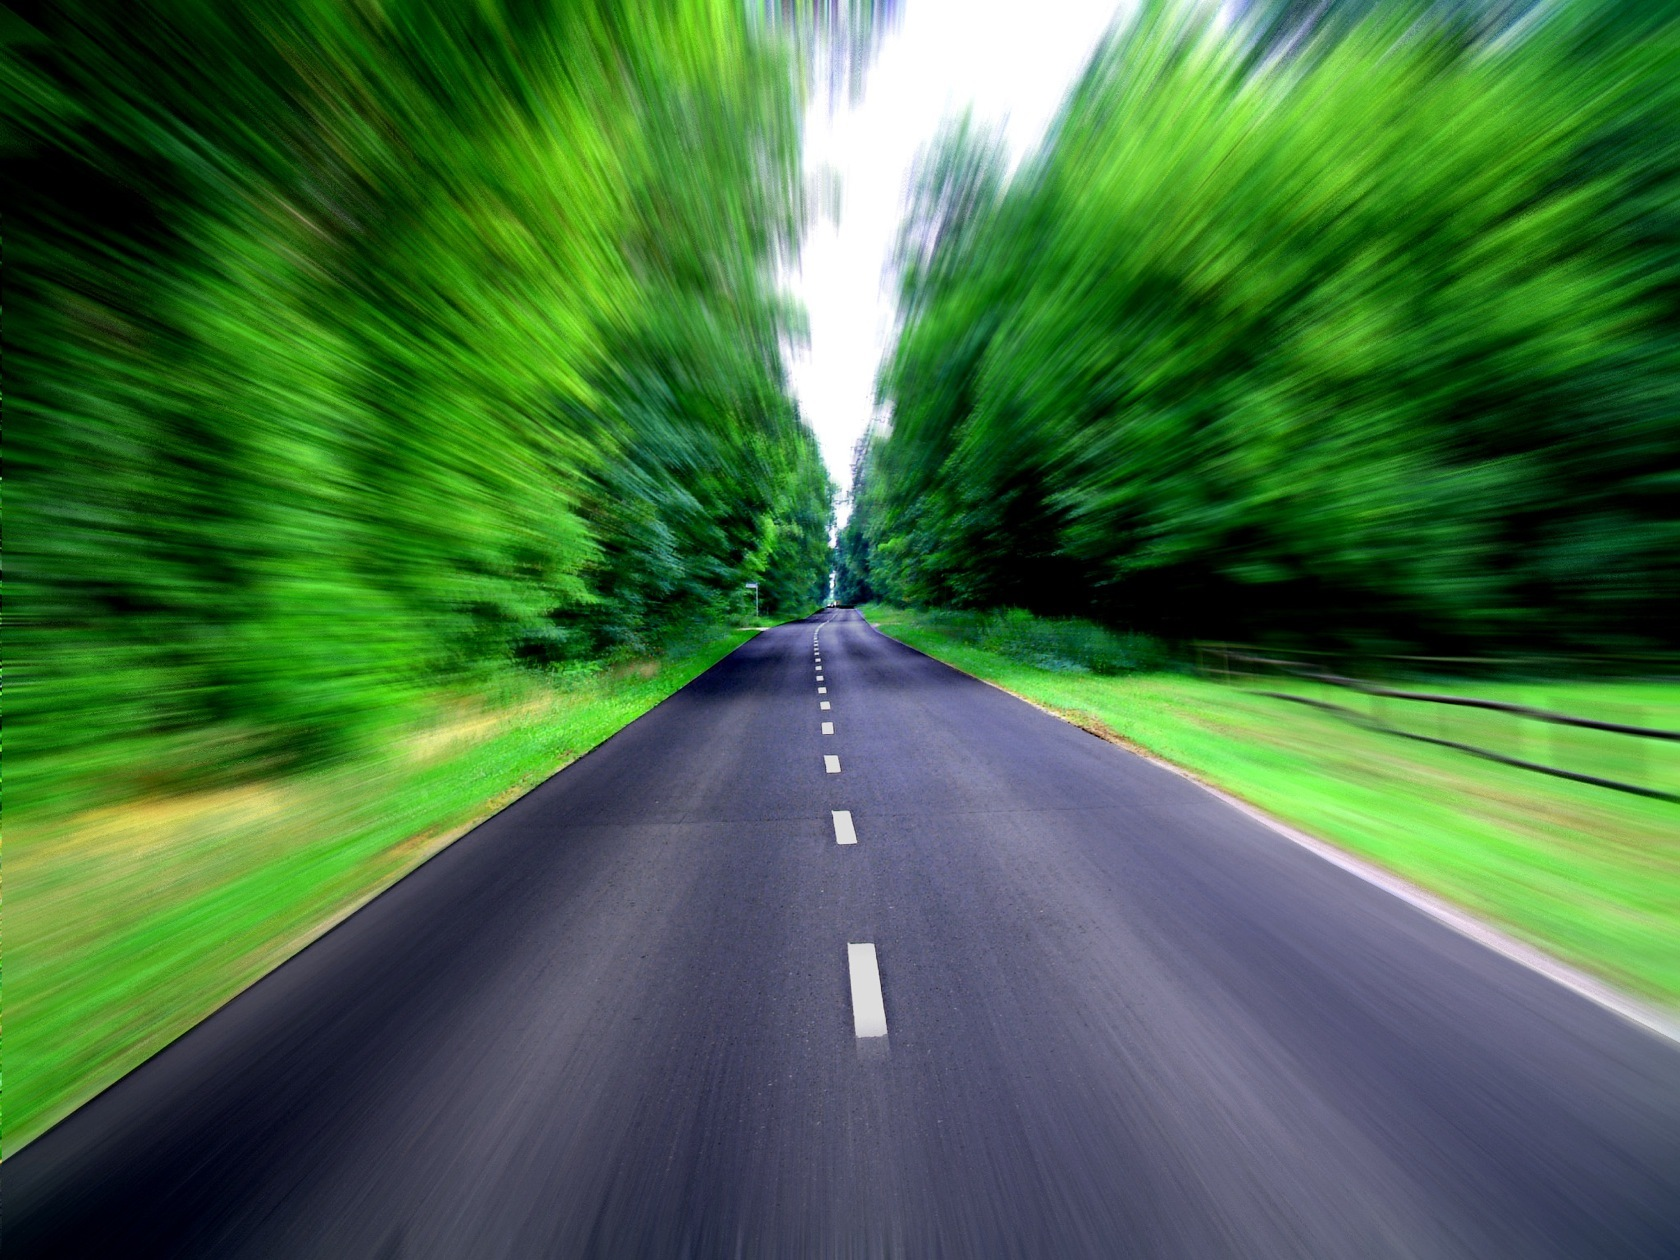 road Speed converge Trees HD Wallpaper